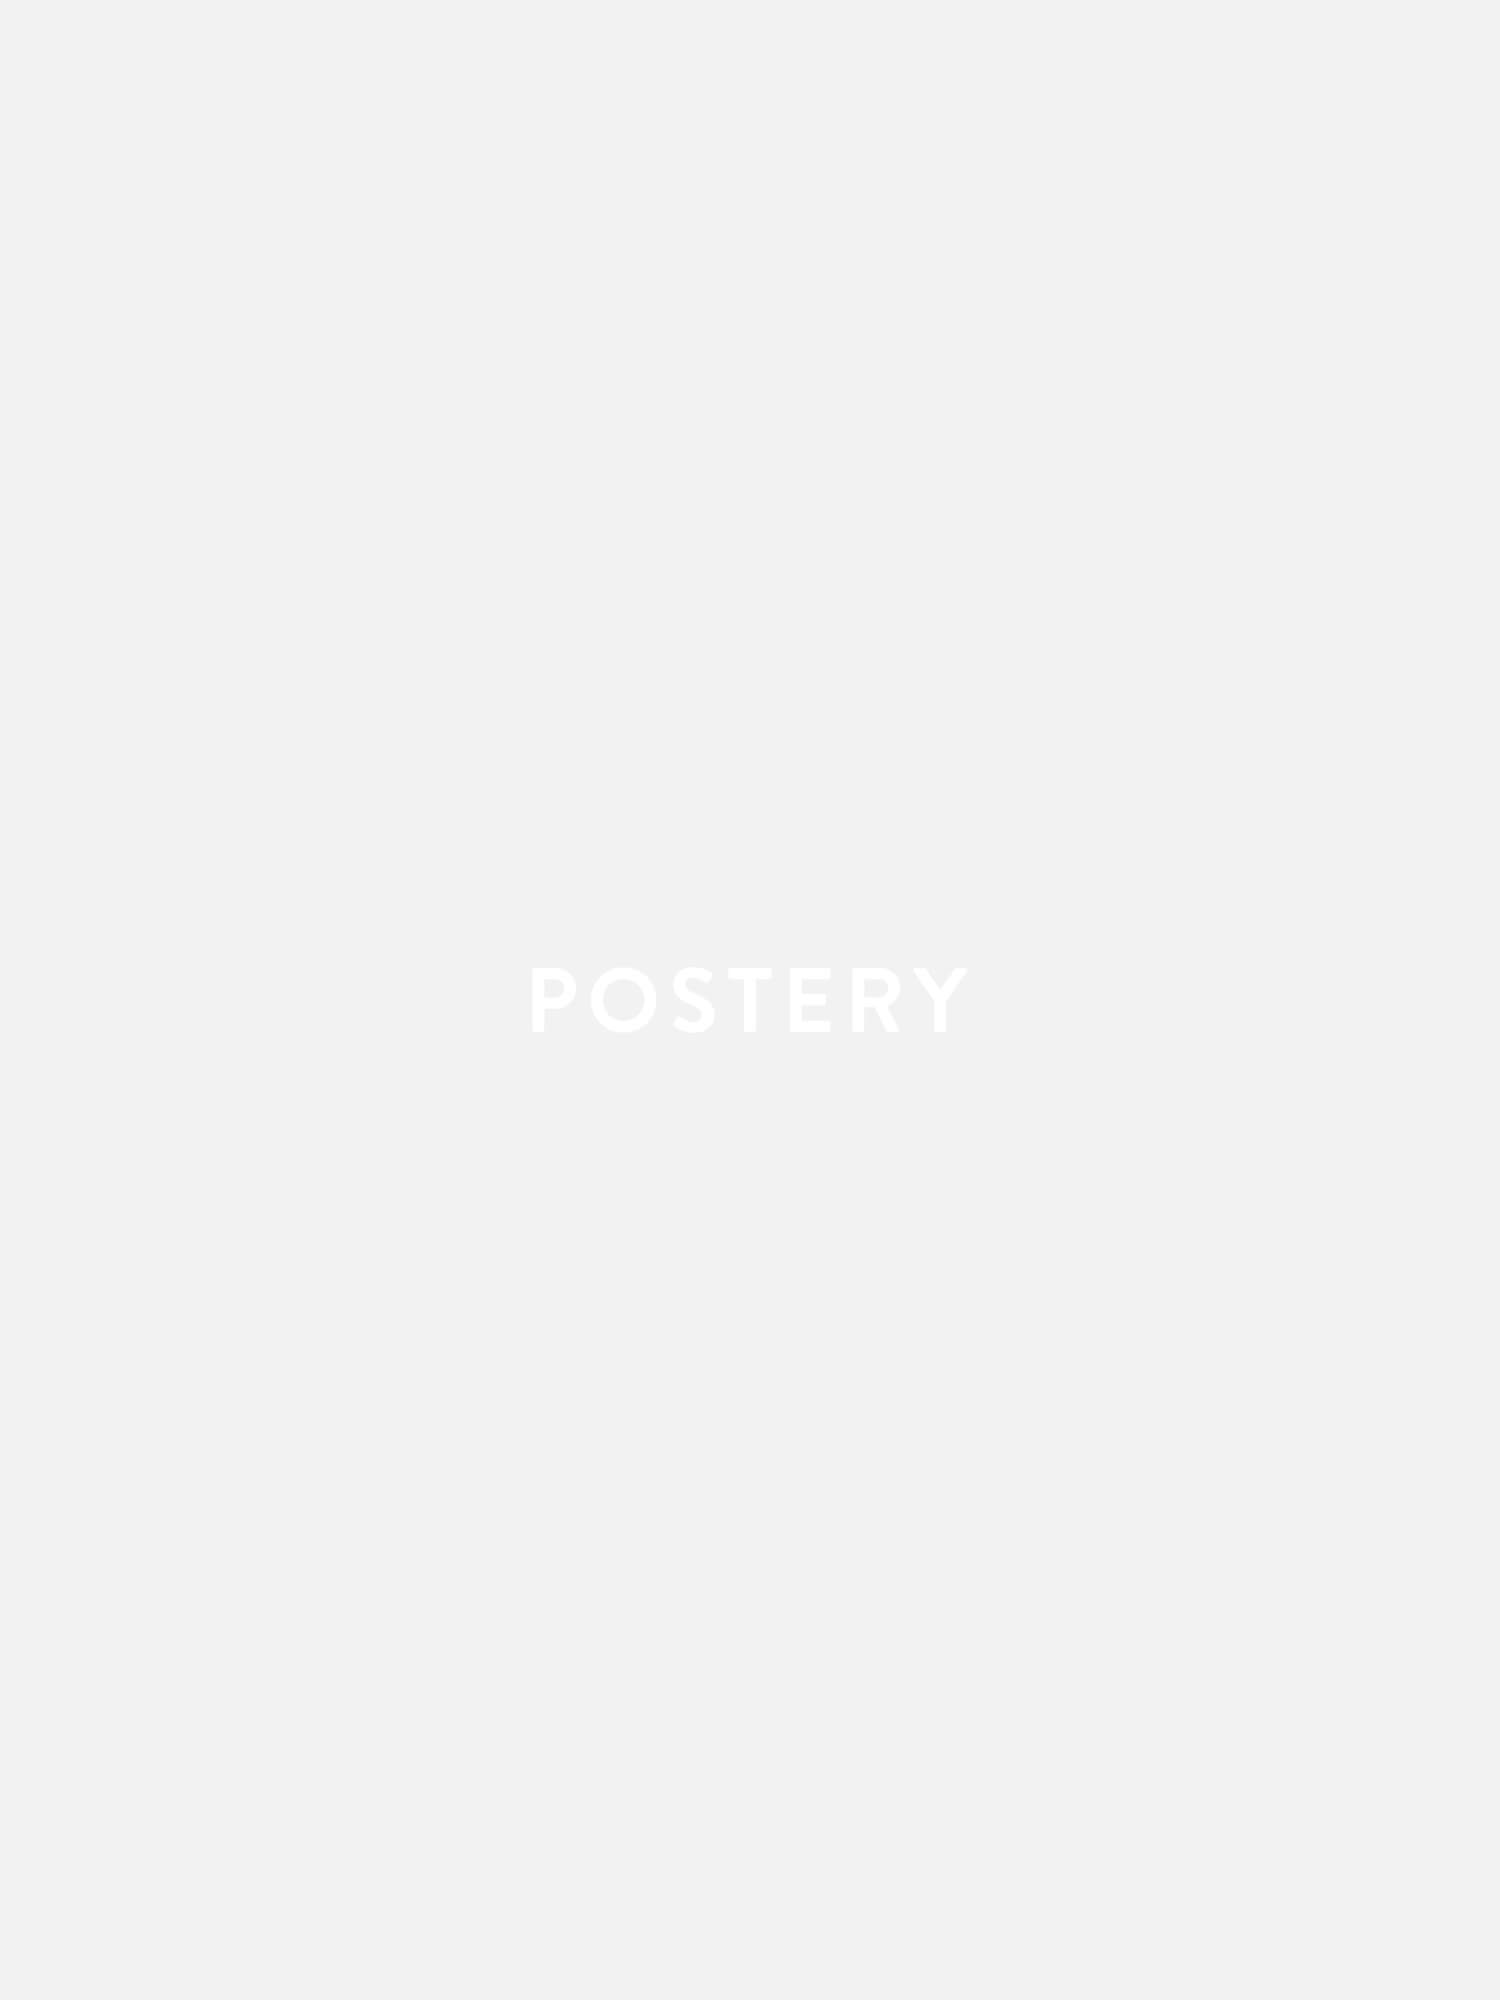 Chic no.2 Poster